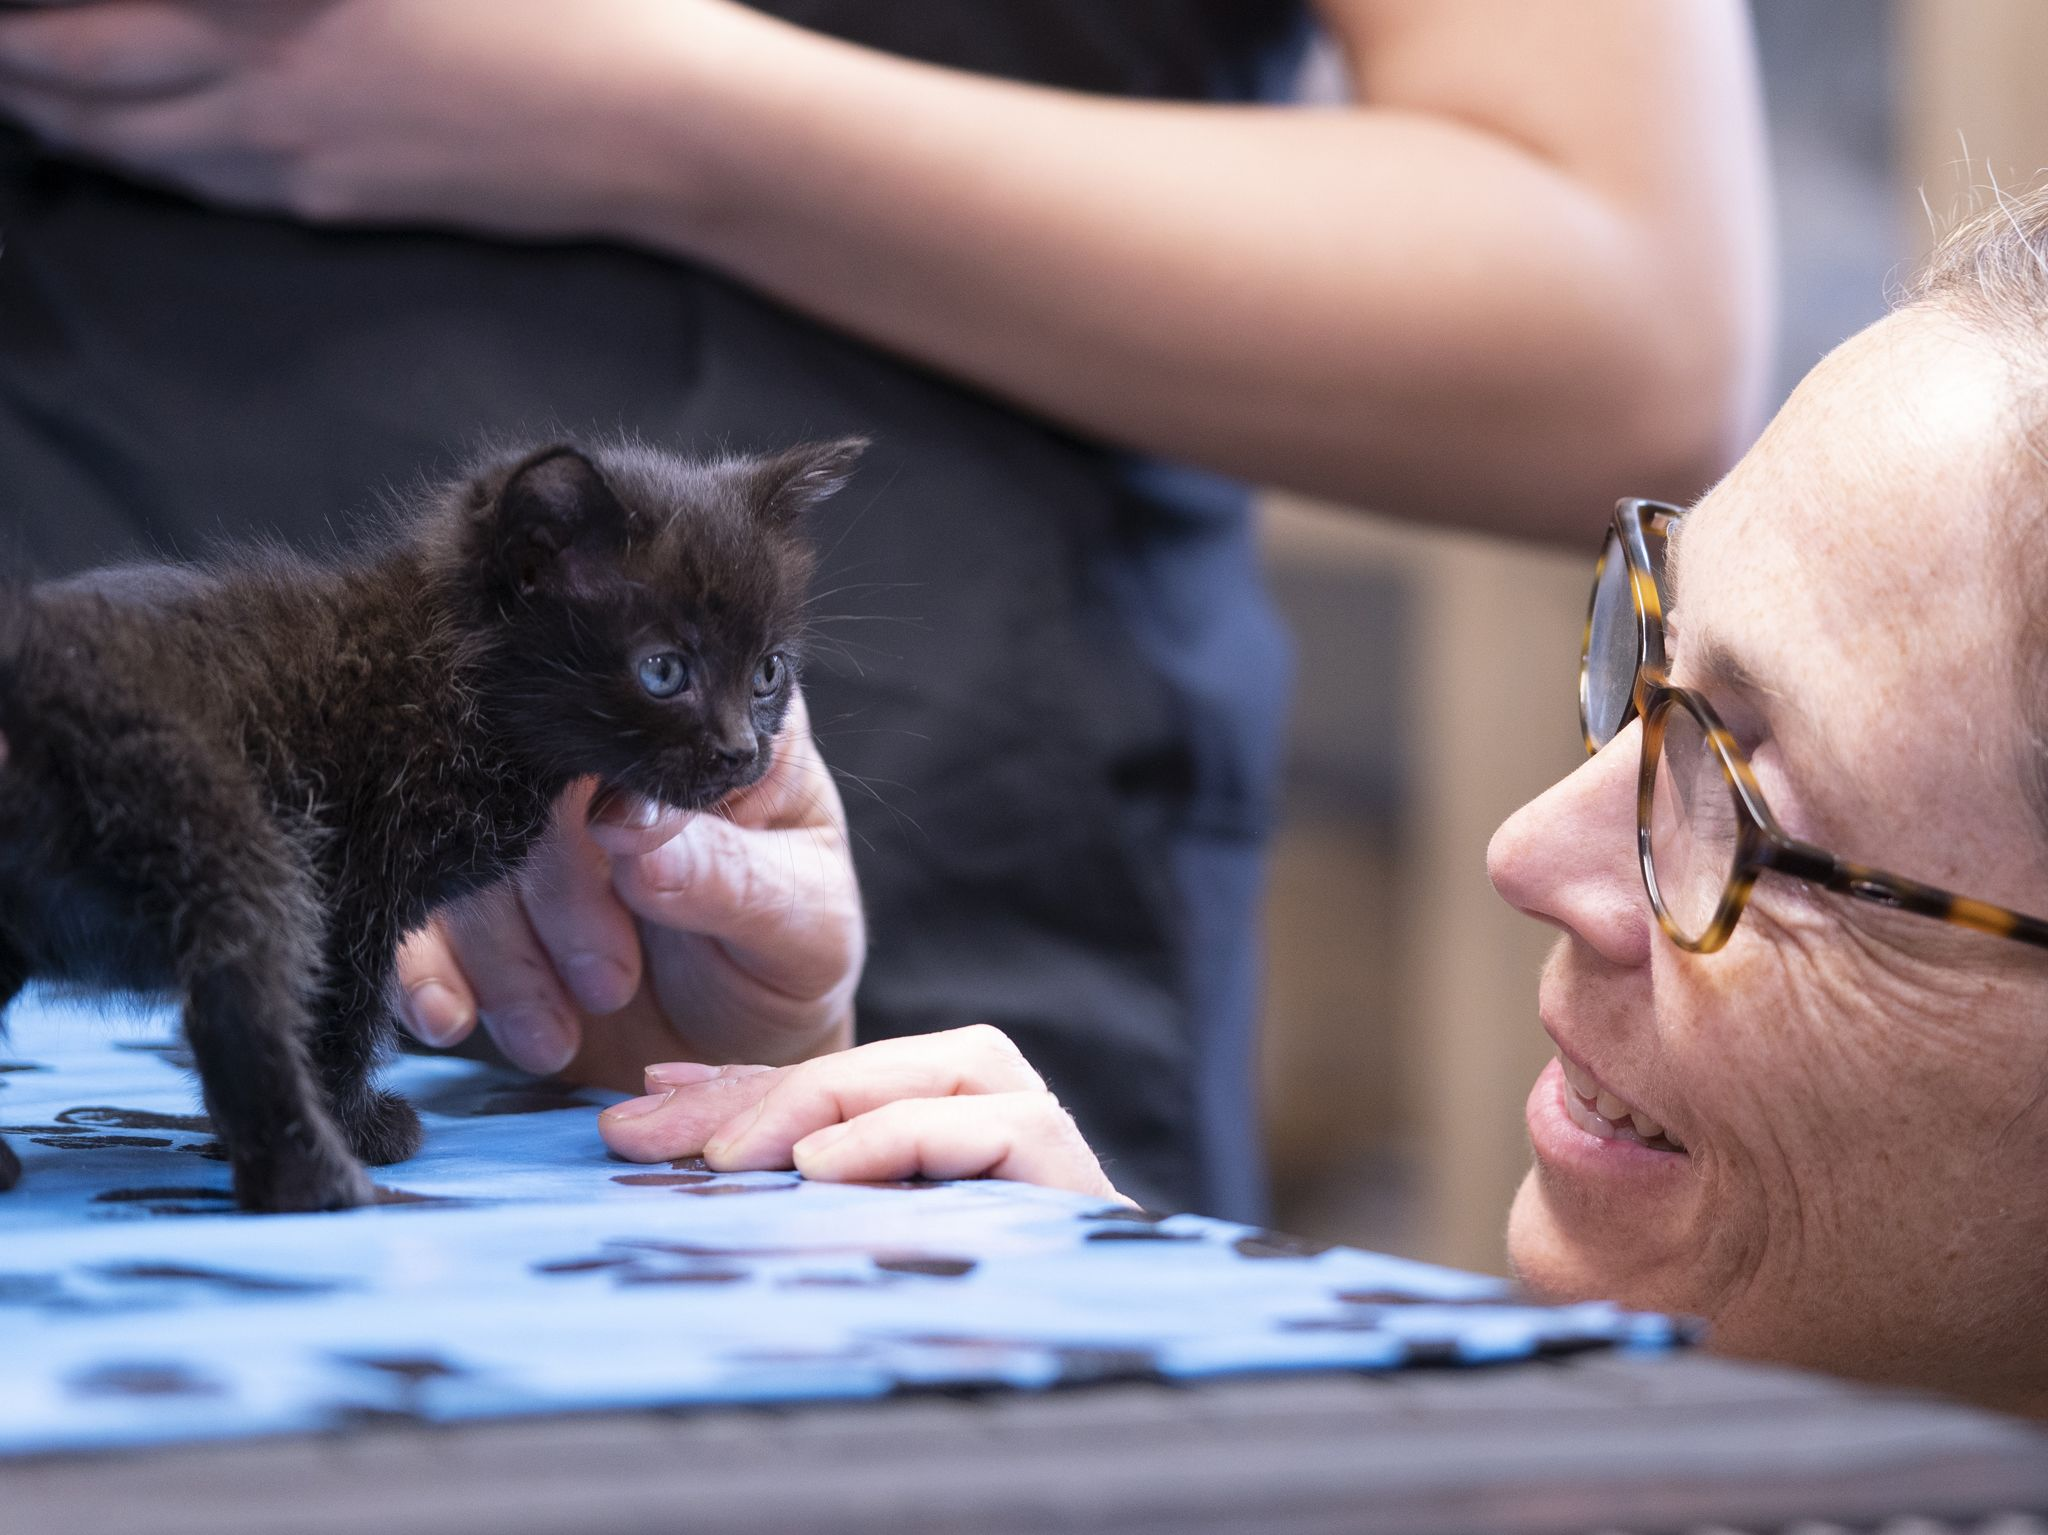 Dr. Michelle Oakley pets a kitten on her exam table. This image is from Dr. Oakley, Yukon Vet. [Photo of the day - November 2020]